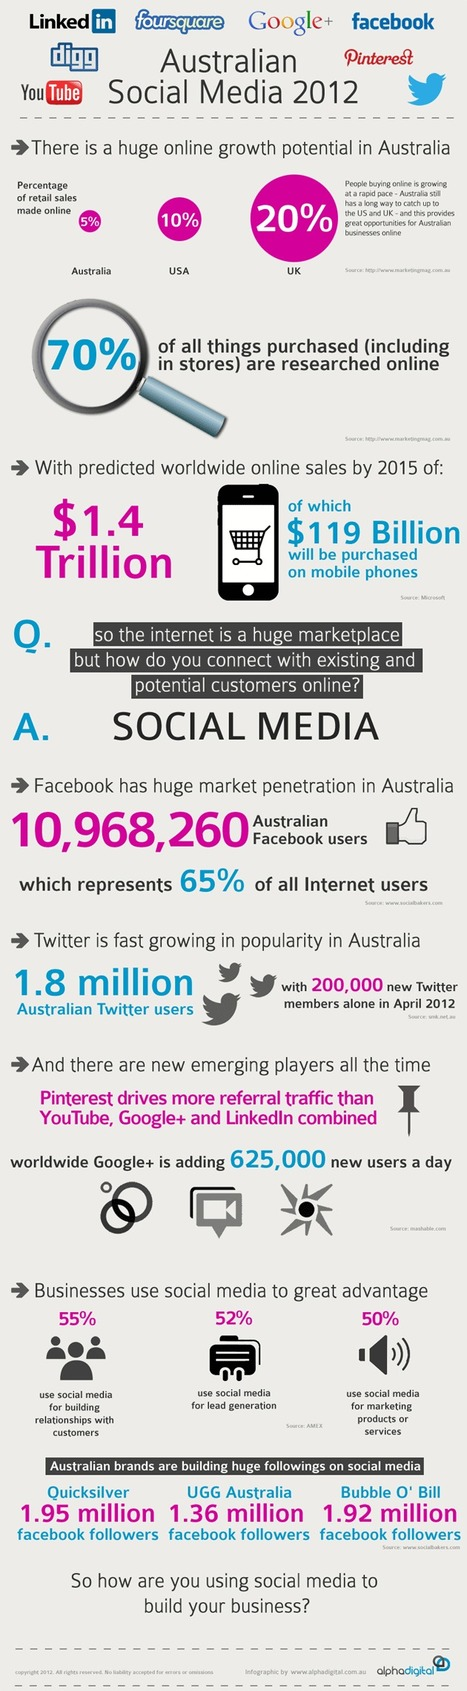 Social Media In Australia 2012 | #Infographic | Business Updates | Scoop.it